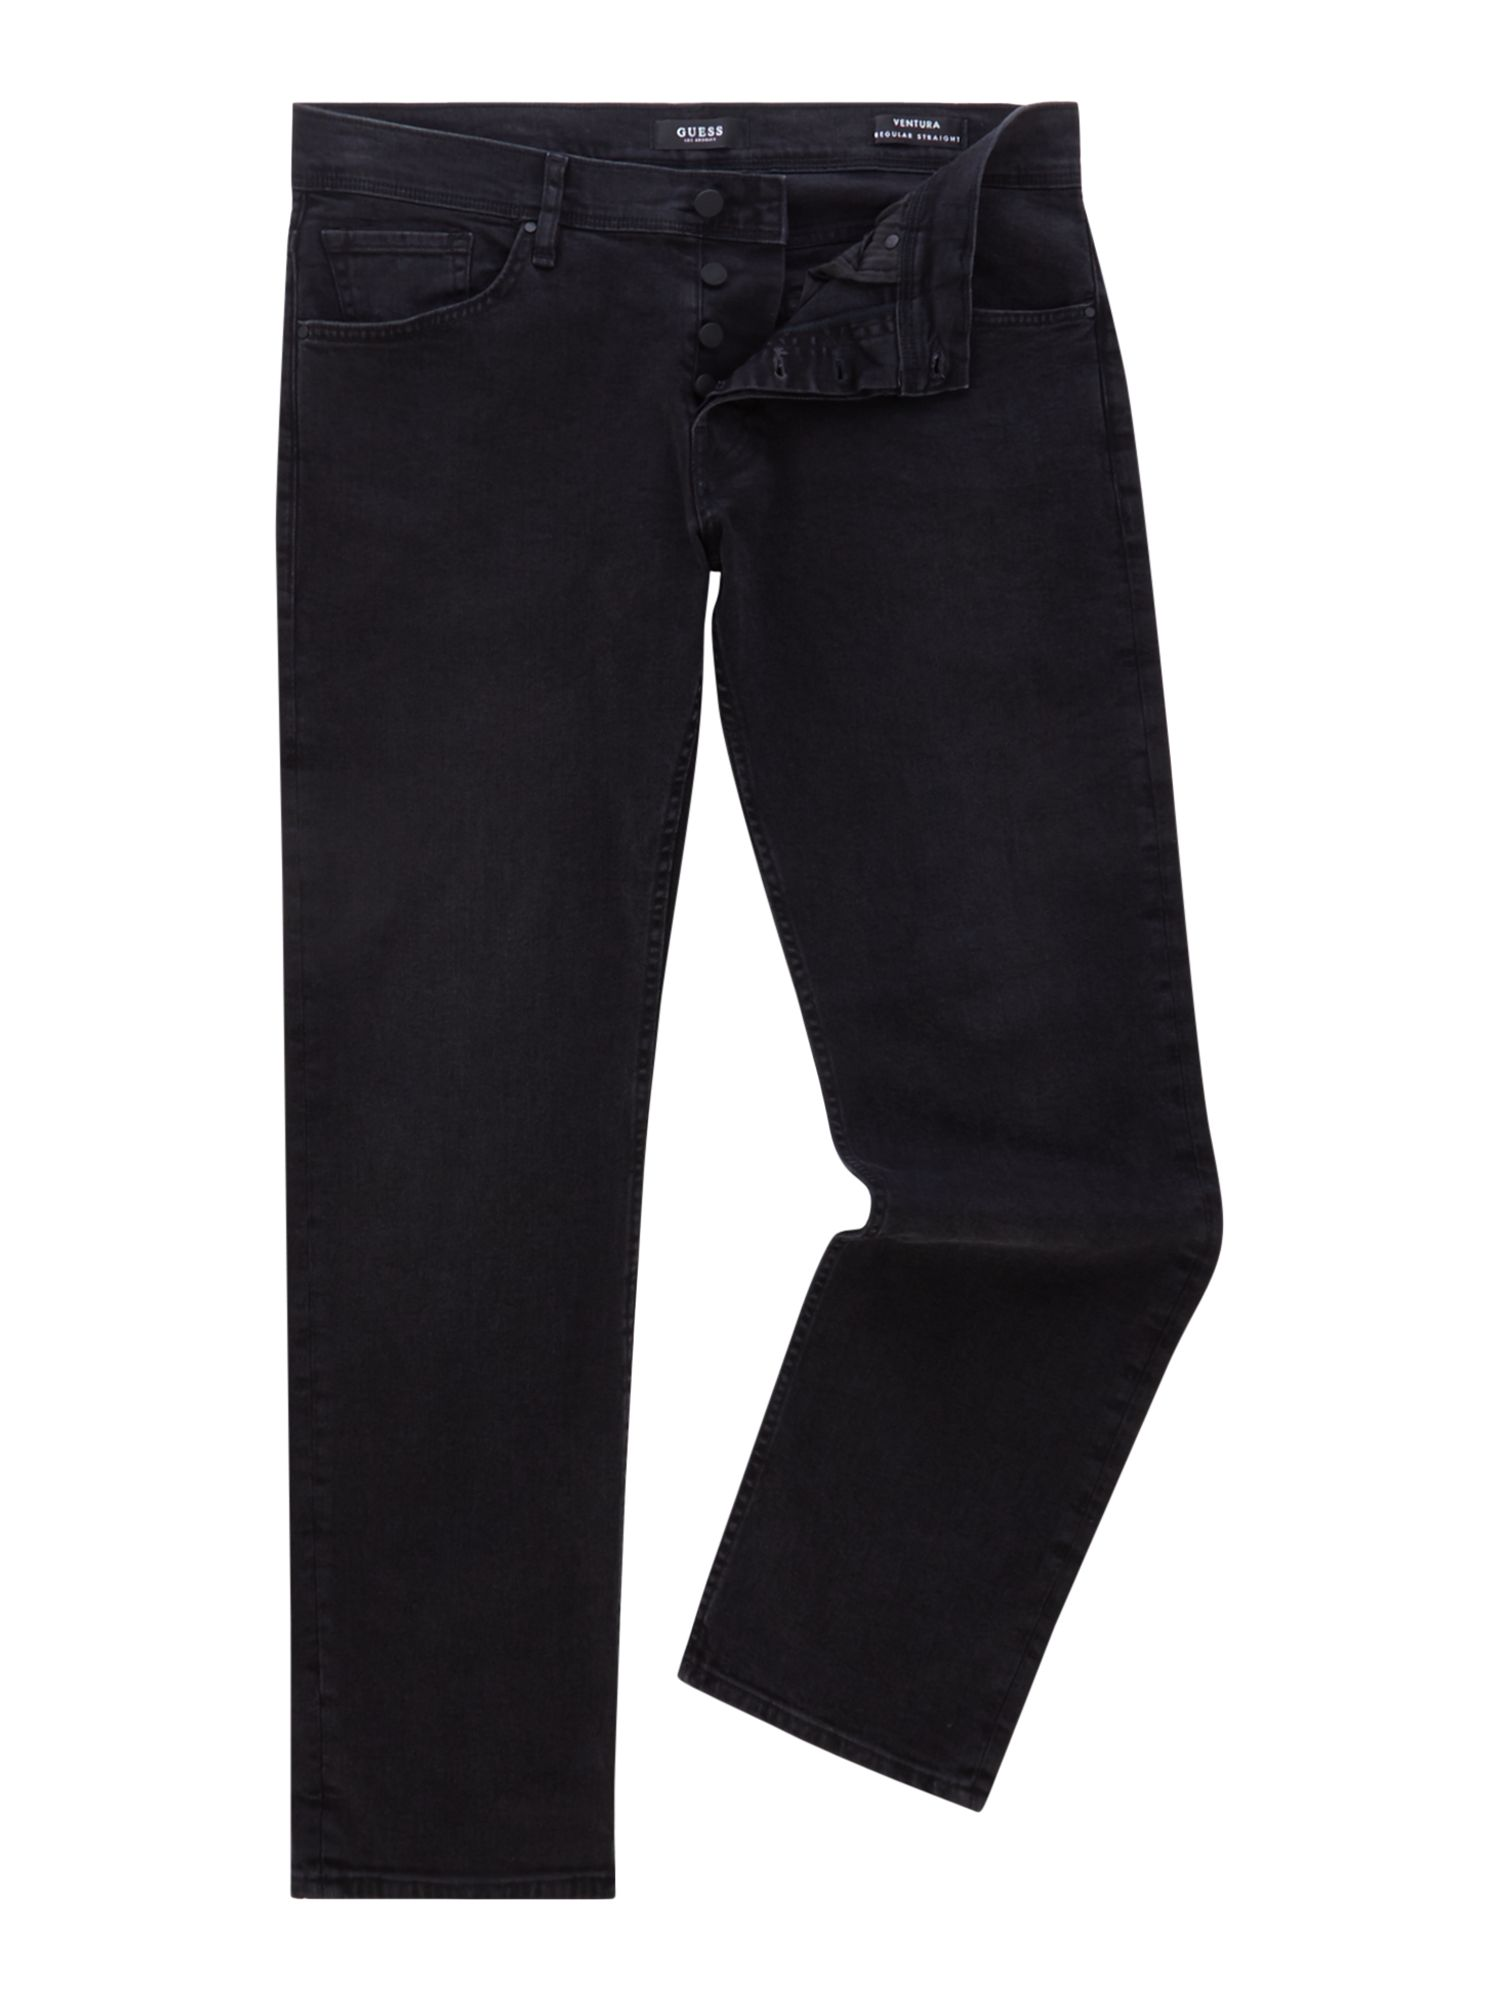 GUESS Jeans Regular Straight